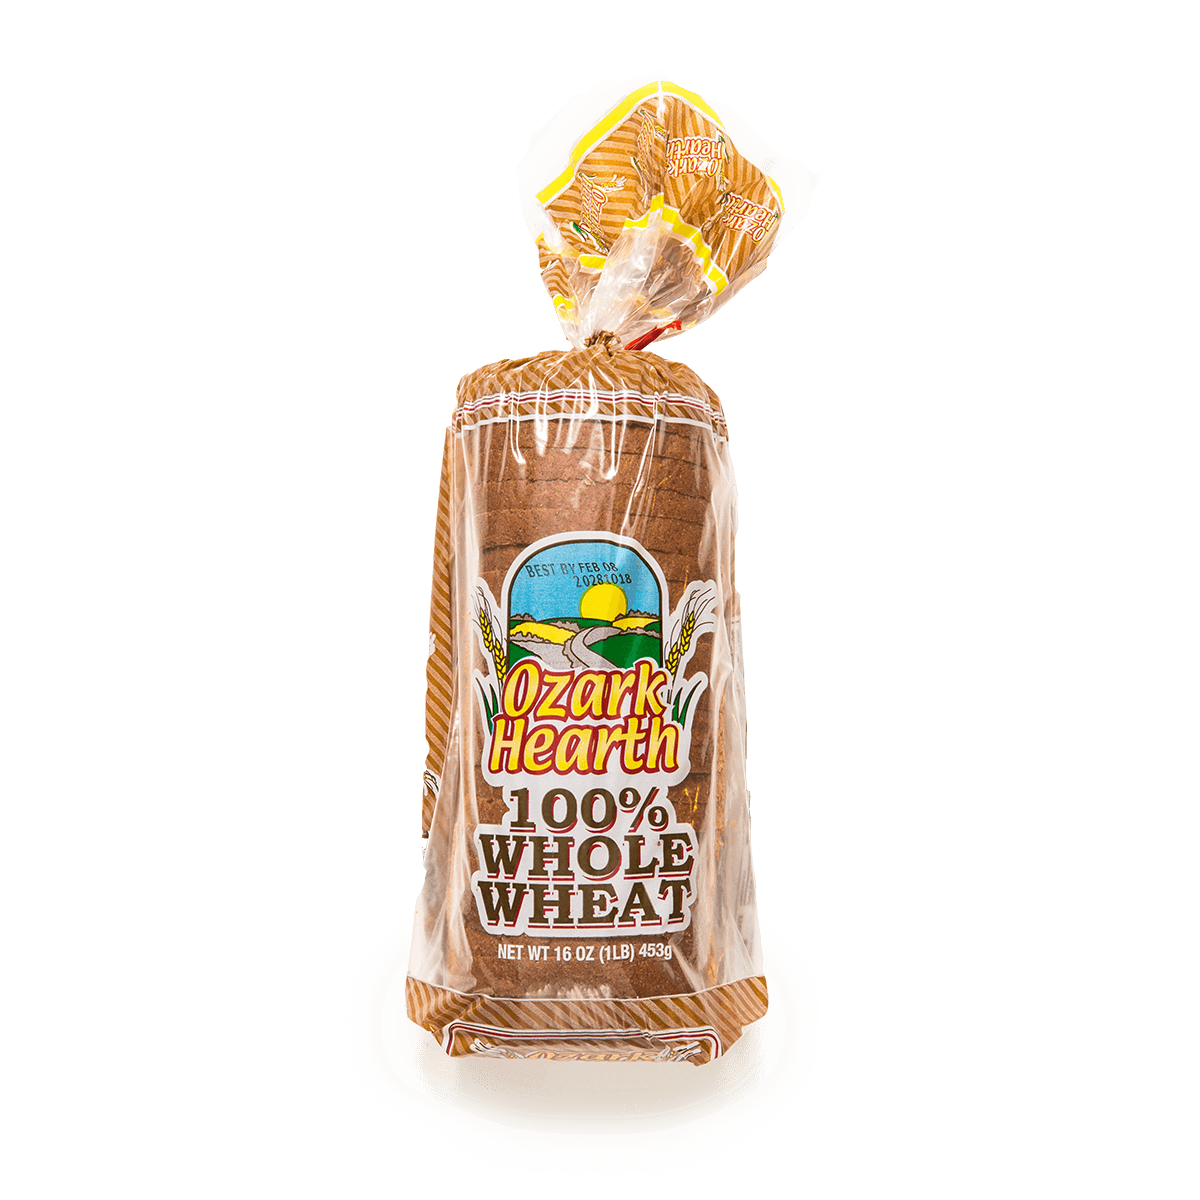 Ozark Hearth 100% Whole Wheat